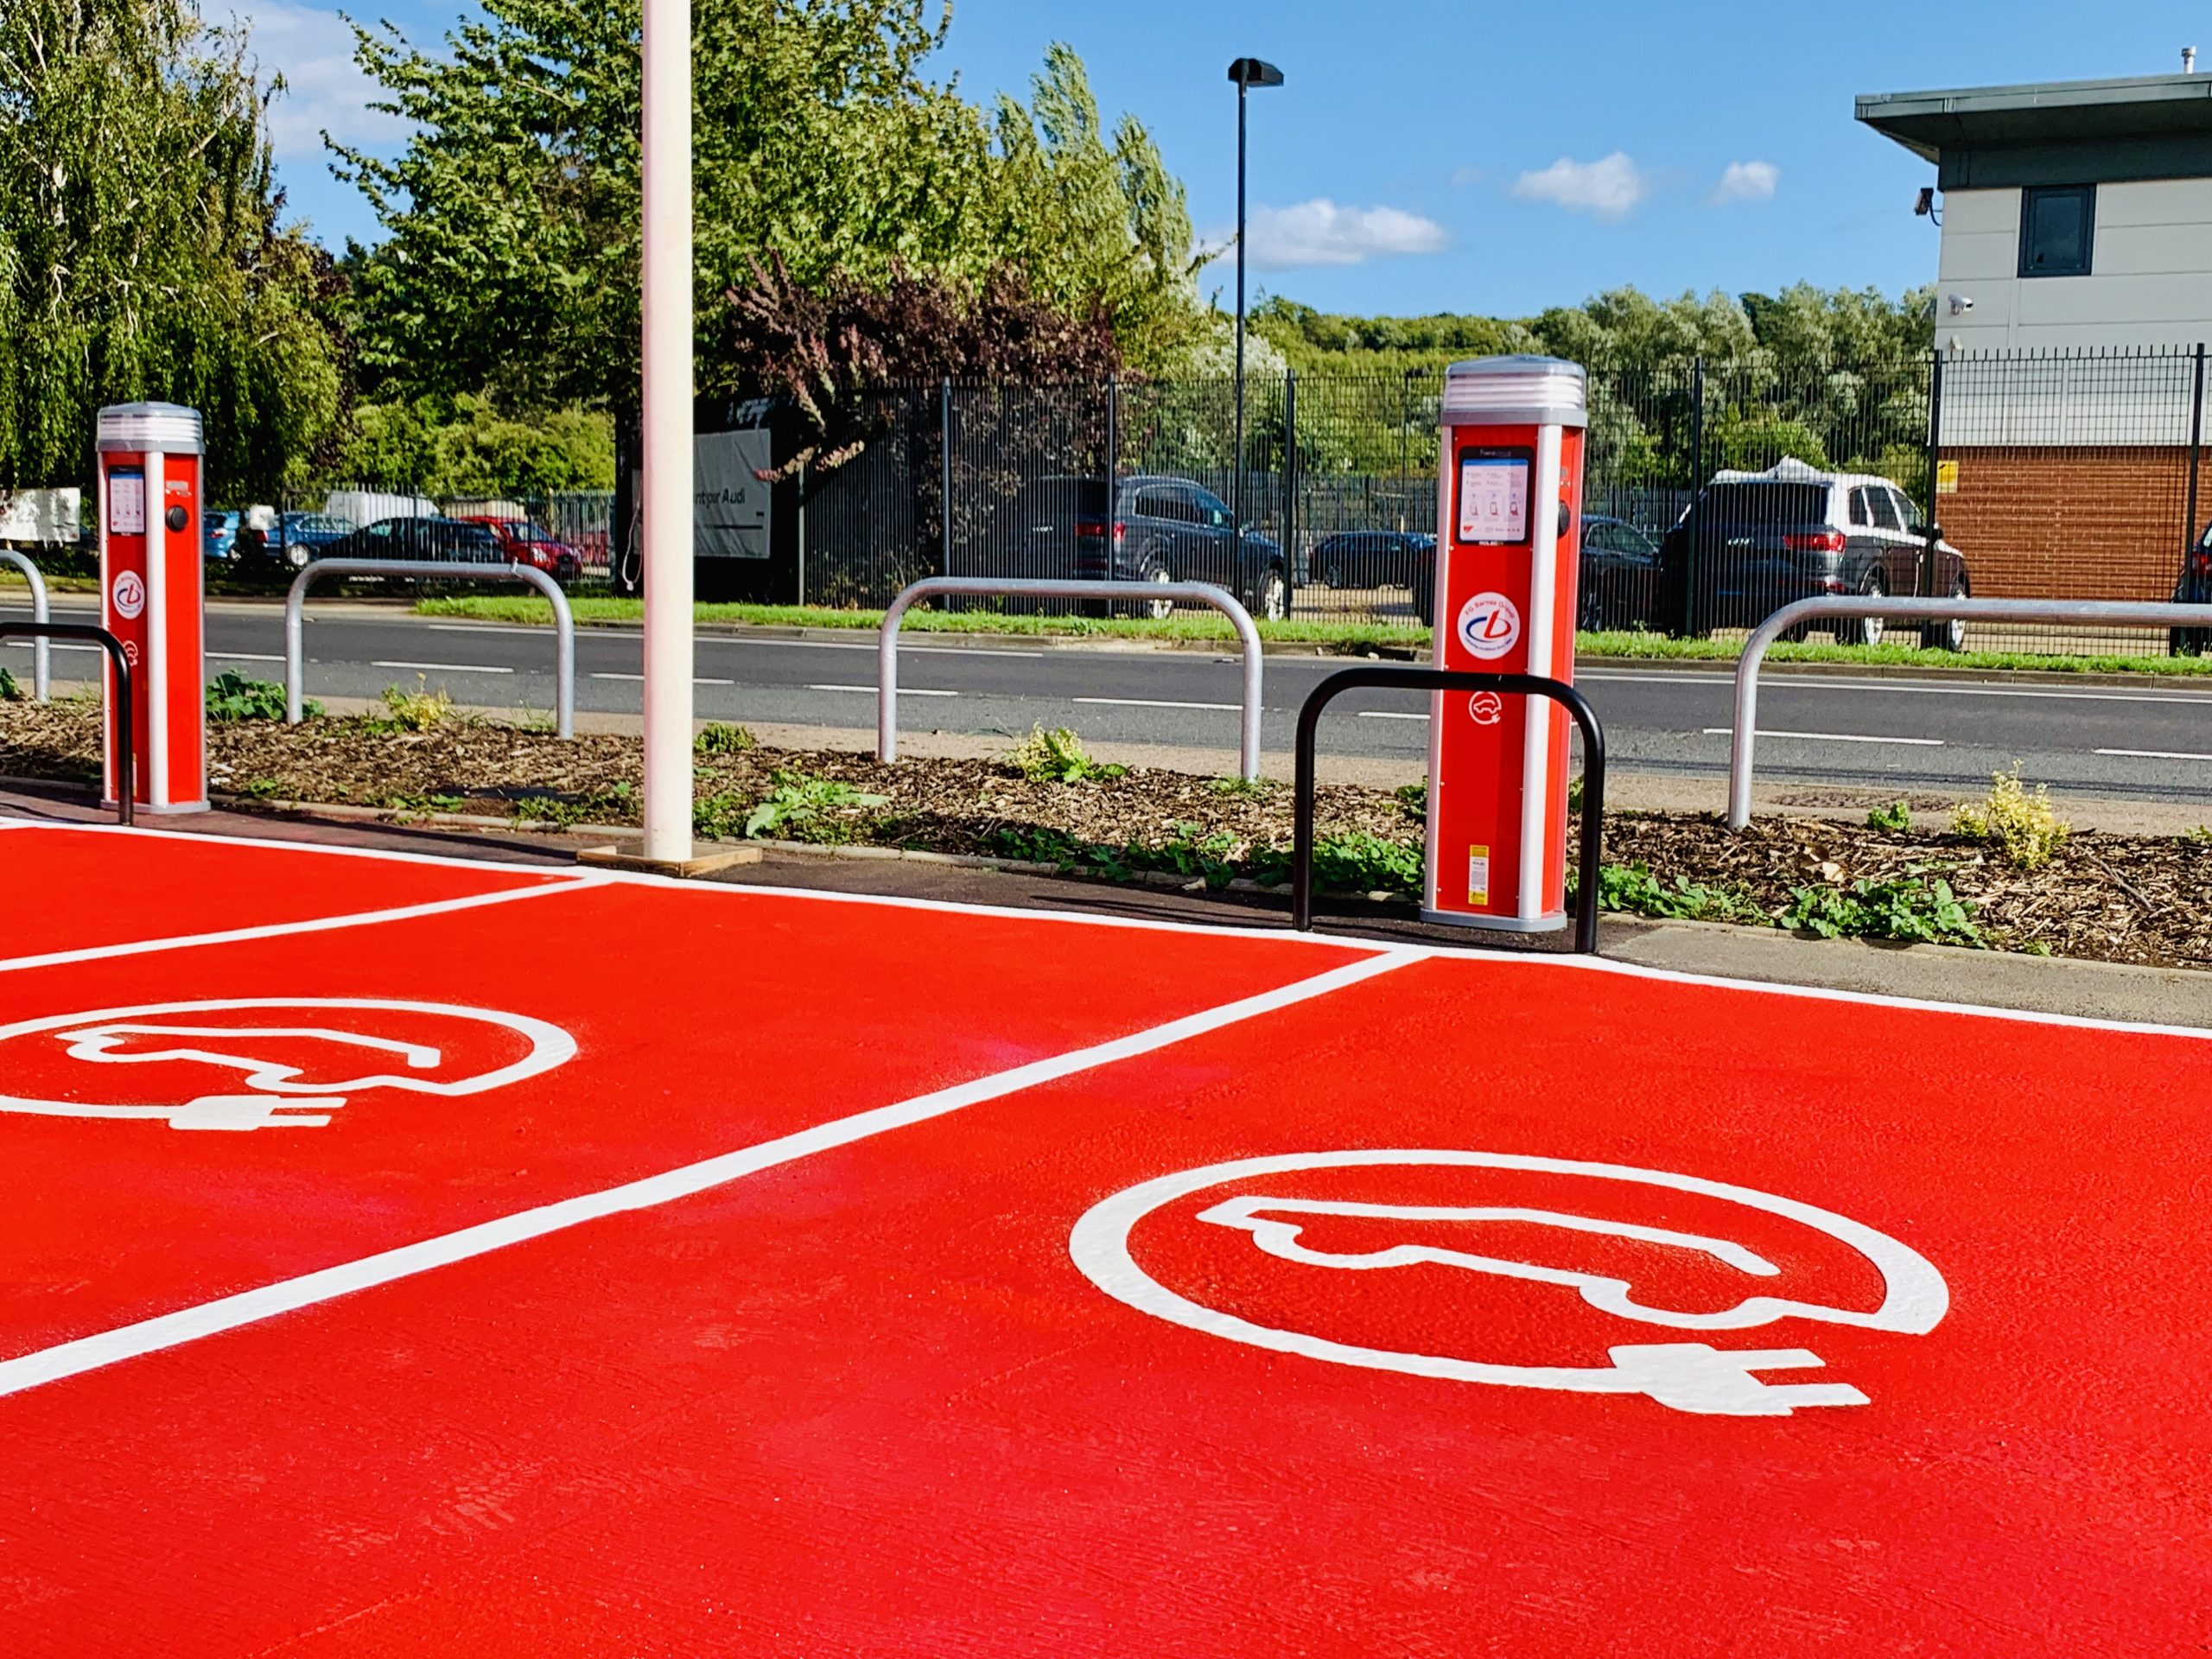 Red paint bay marking by SRG Electrical